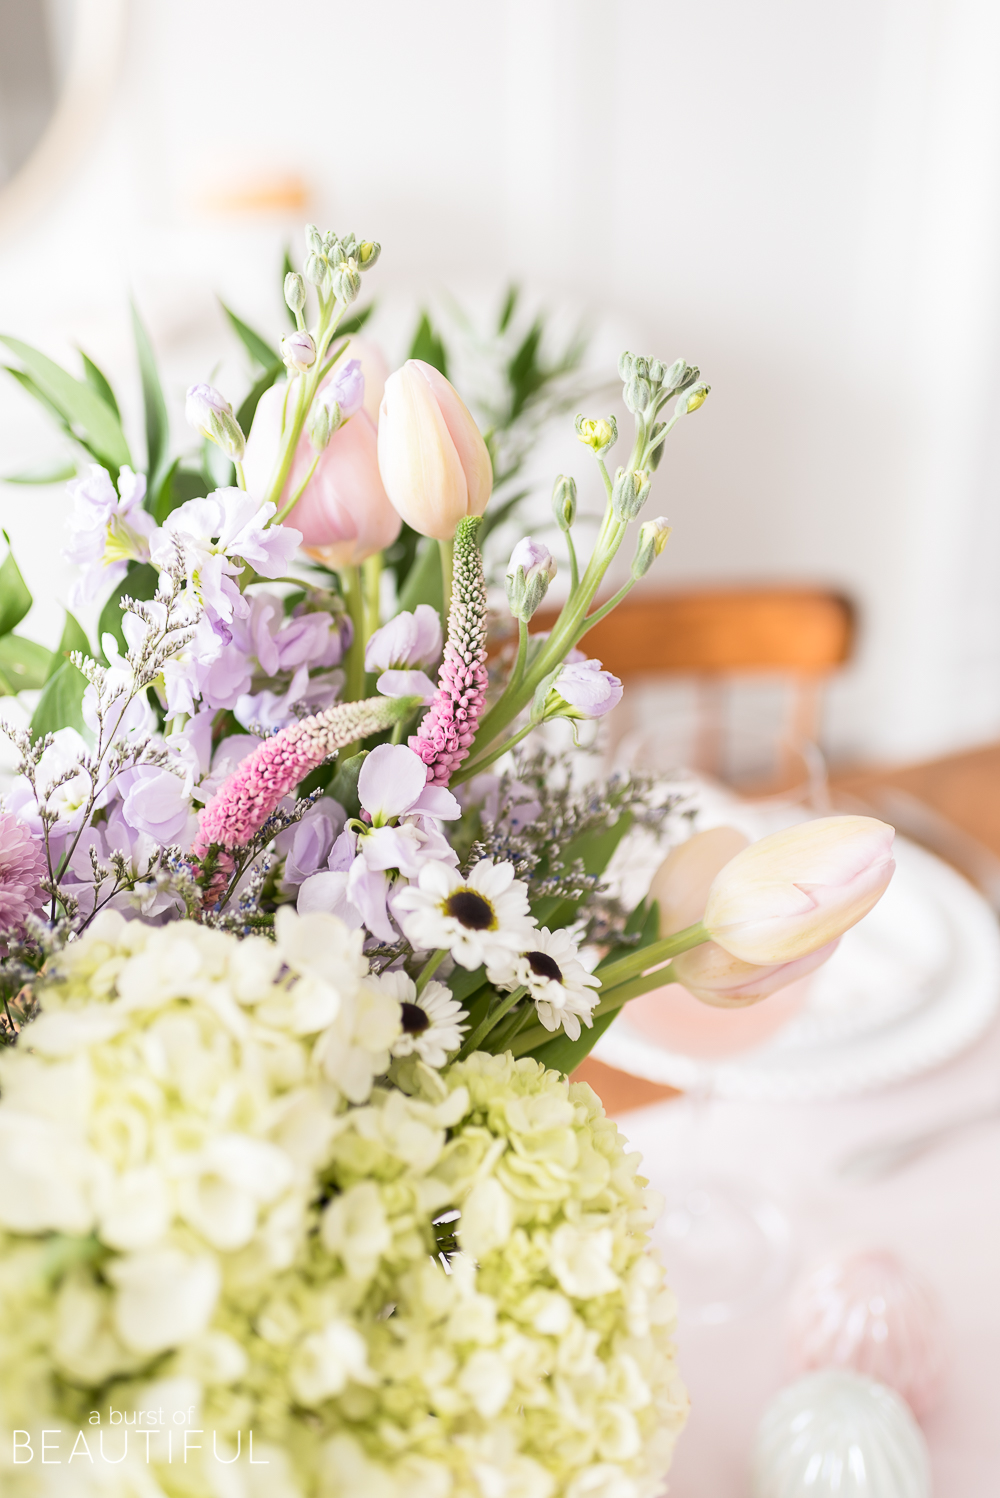 Celebrate Easter around a table set with classic white dishes, linens in pastel shades and a centerpiece full of spring blooms.